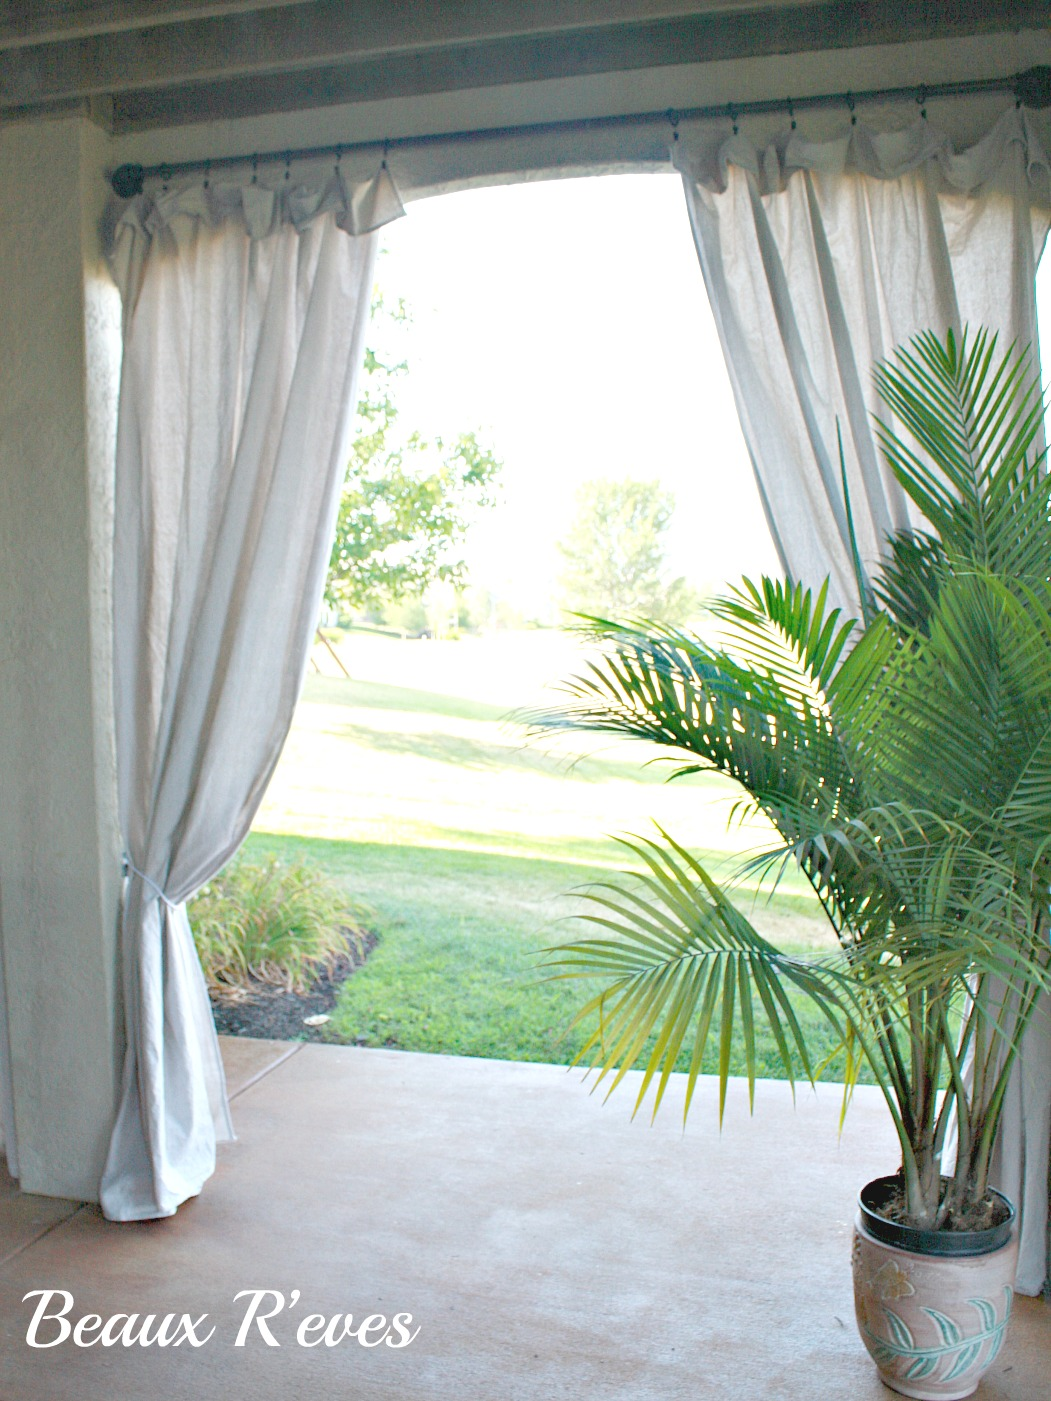 Beaux R'eves: No Sew Outdoor Curtains